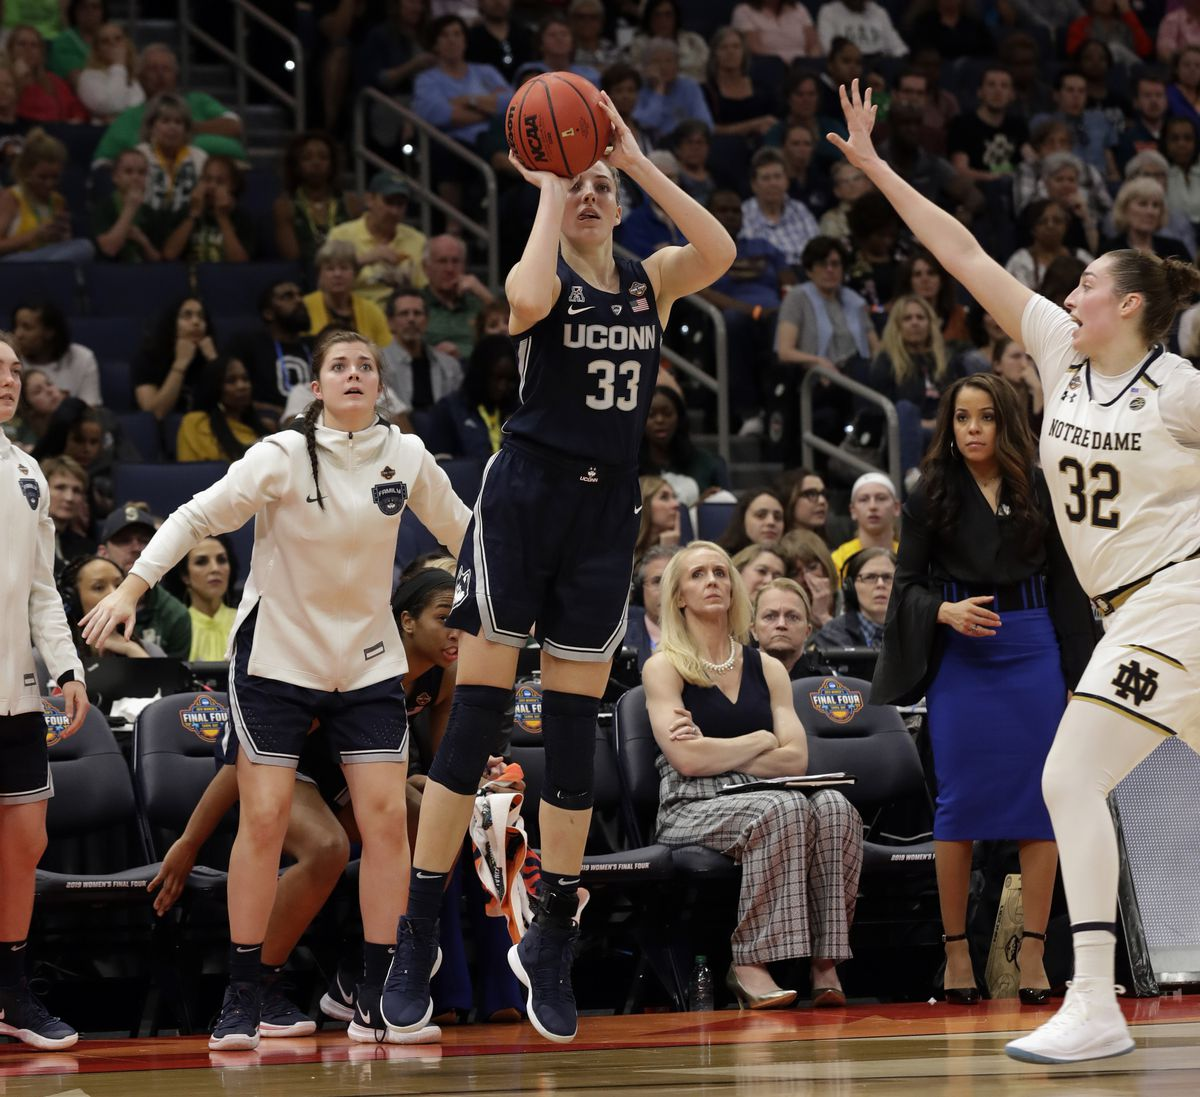 Connecticut guard Katie Lou Samuelson (33) attempt a 3-point shot as Notre Dame forward Jessica Shepard (32) defends during the second half of a Final Four semifinal of the NCAA women's college basketball tournament Friday, April 5, 2019, in Tampa, Fla. |